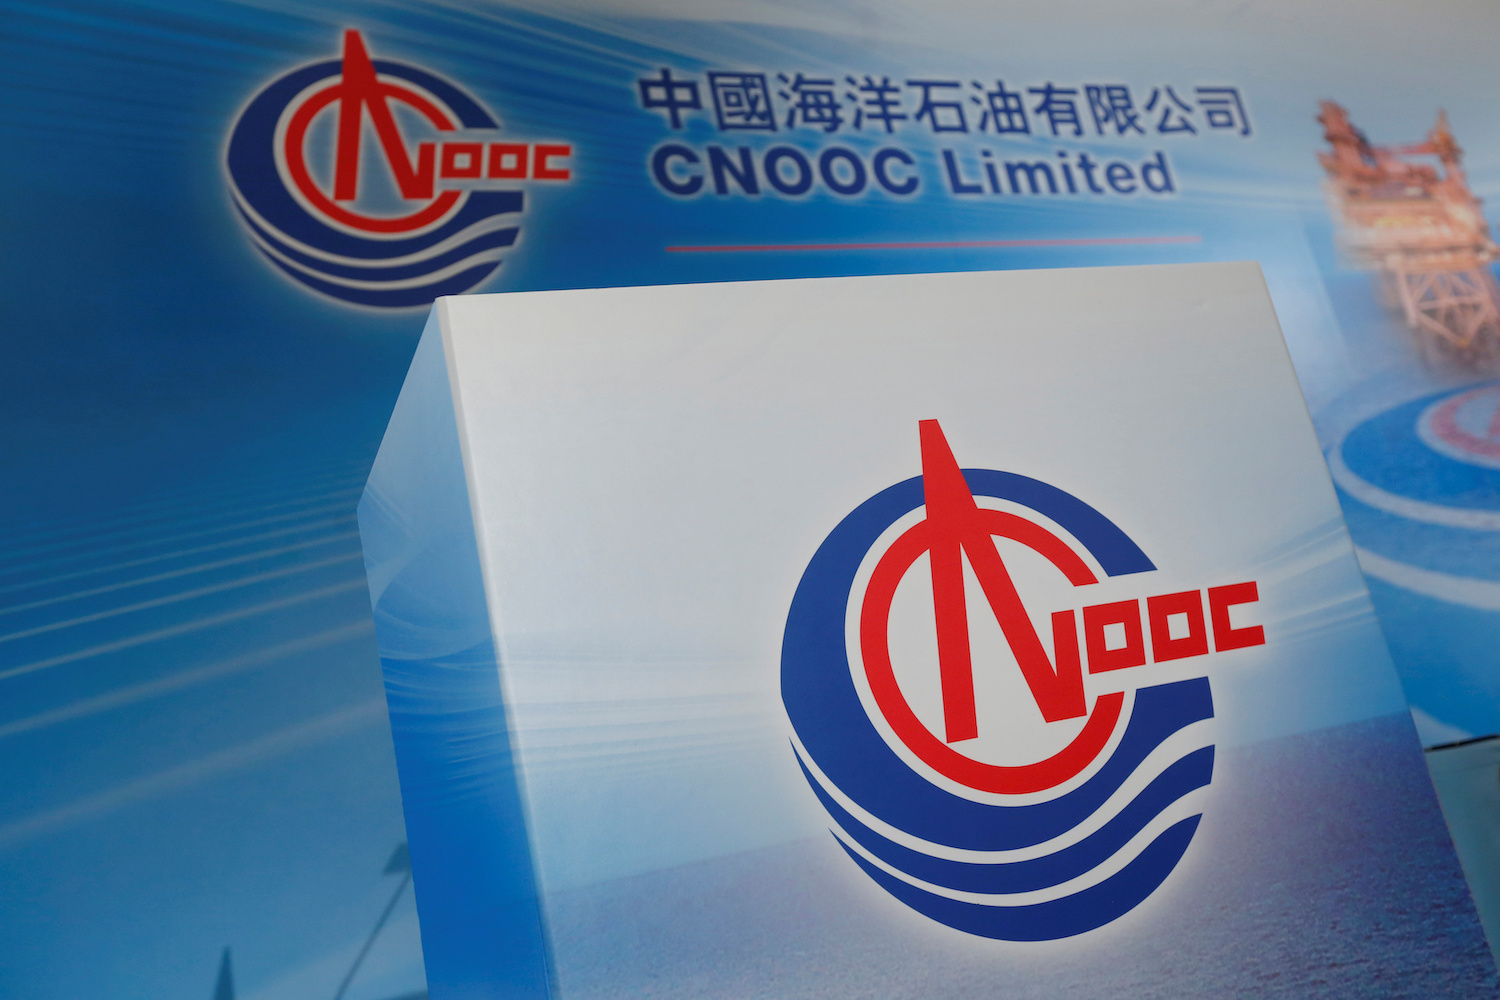 NYSE set to remove China's CNOOC from board